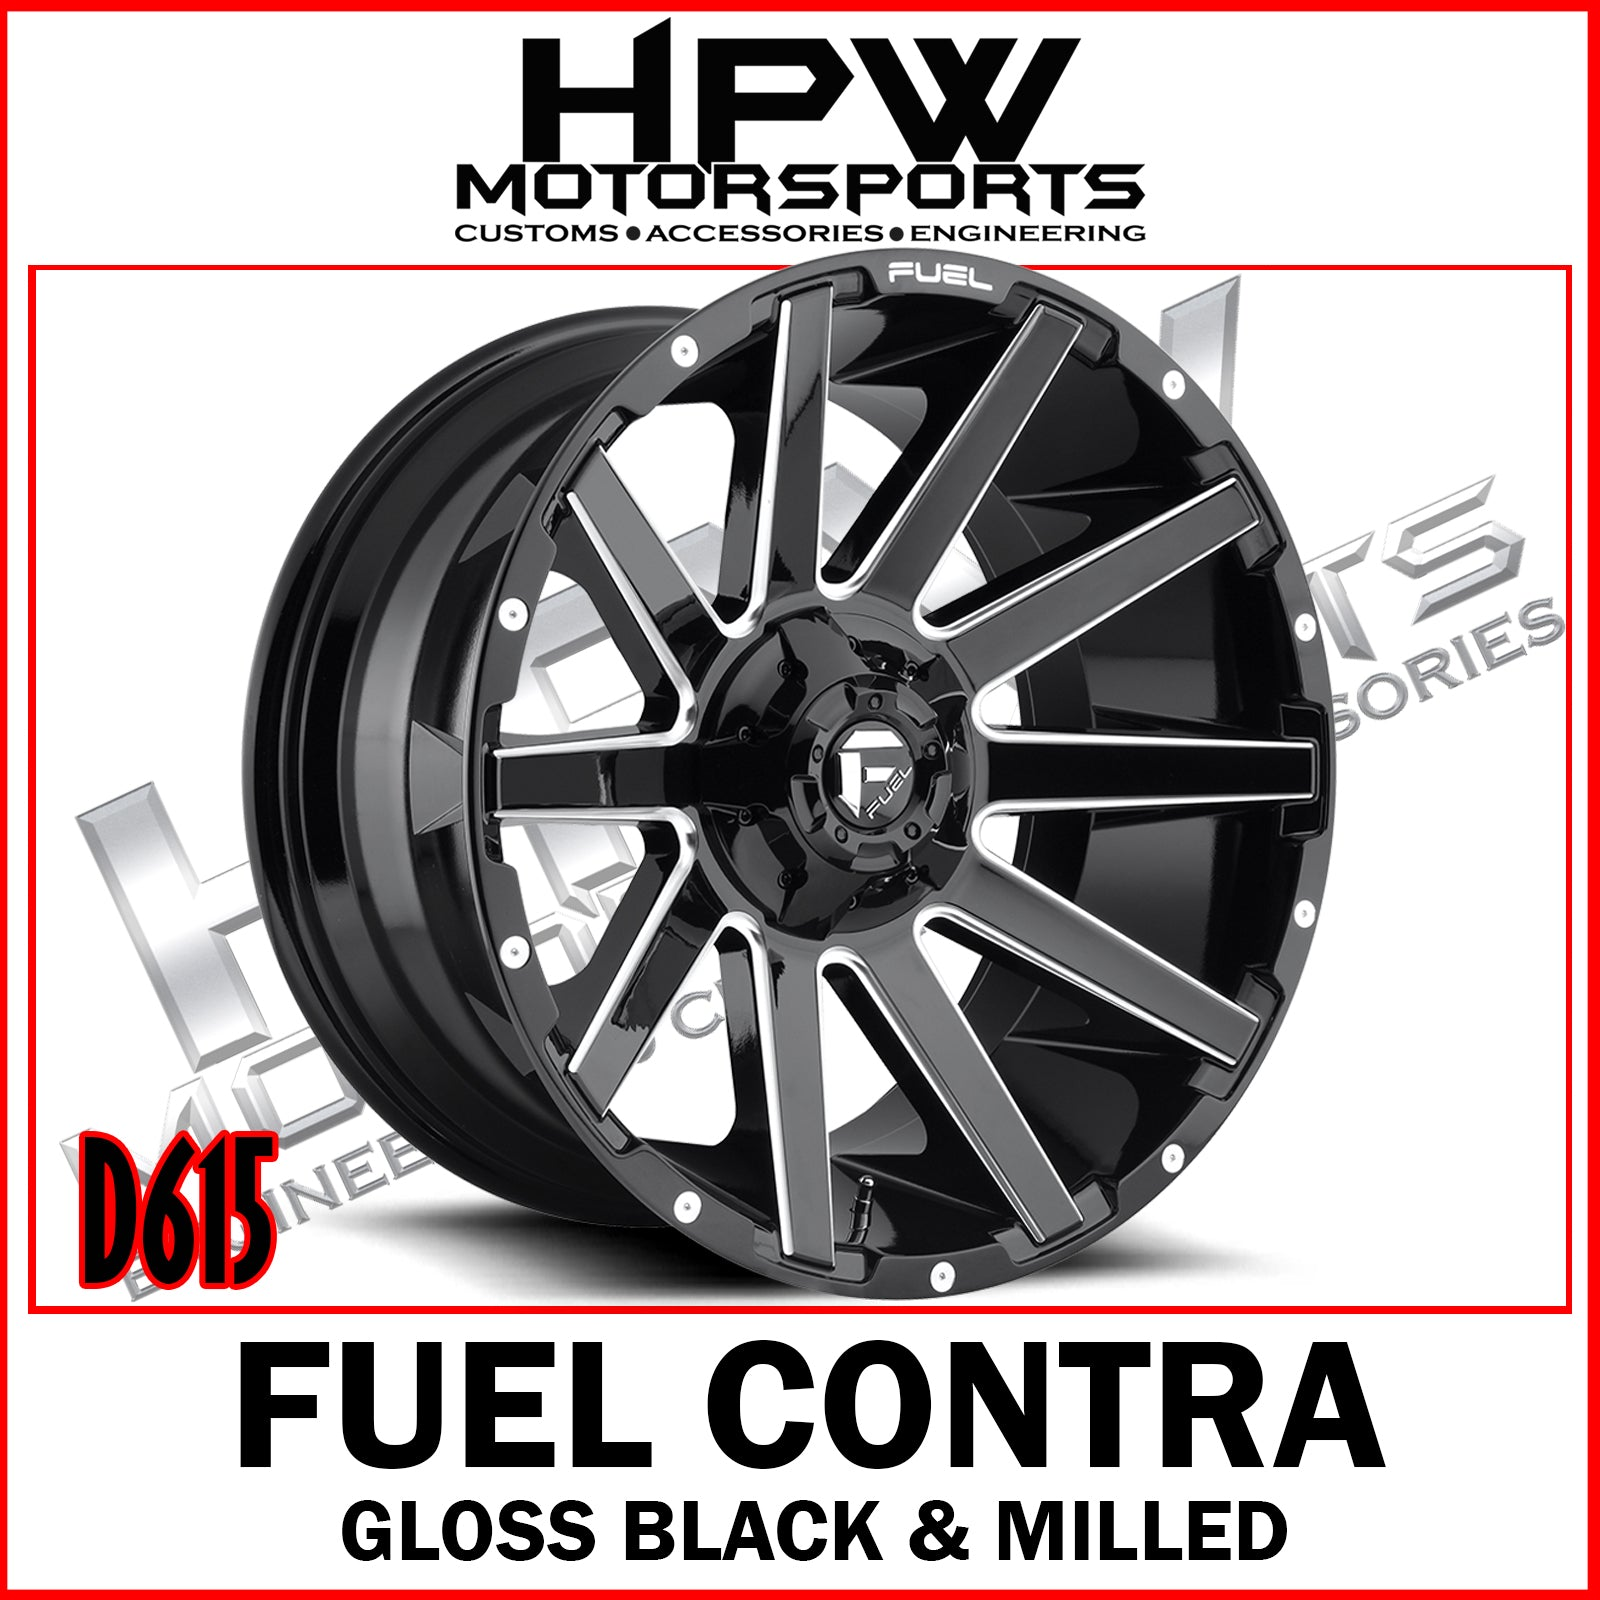 D615 FUEL CONTRA - GLOSS BLACK & MILLED - Set of 4